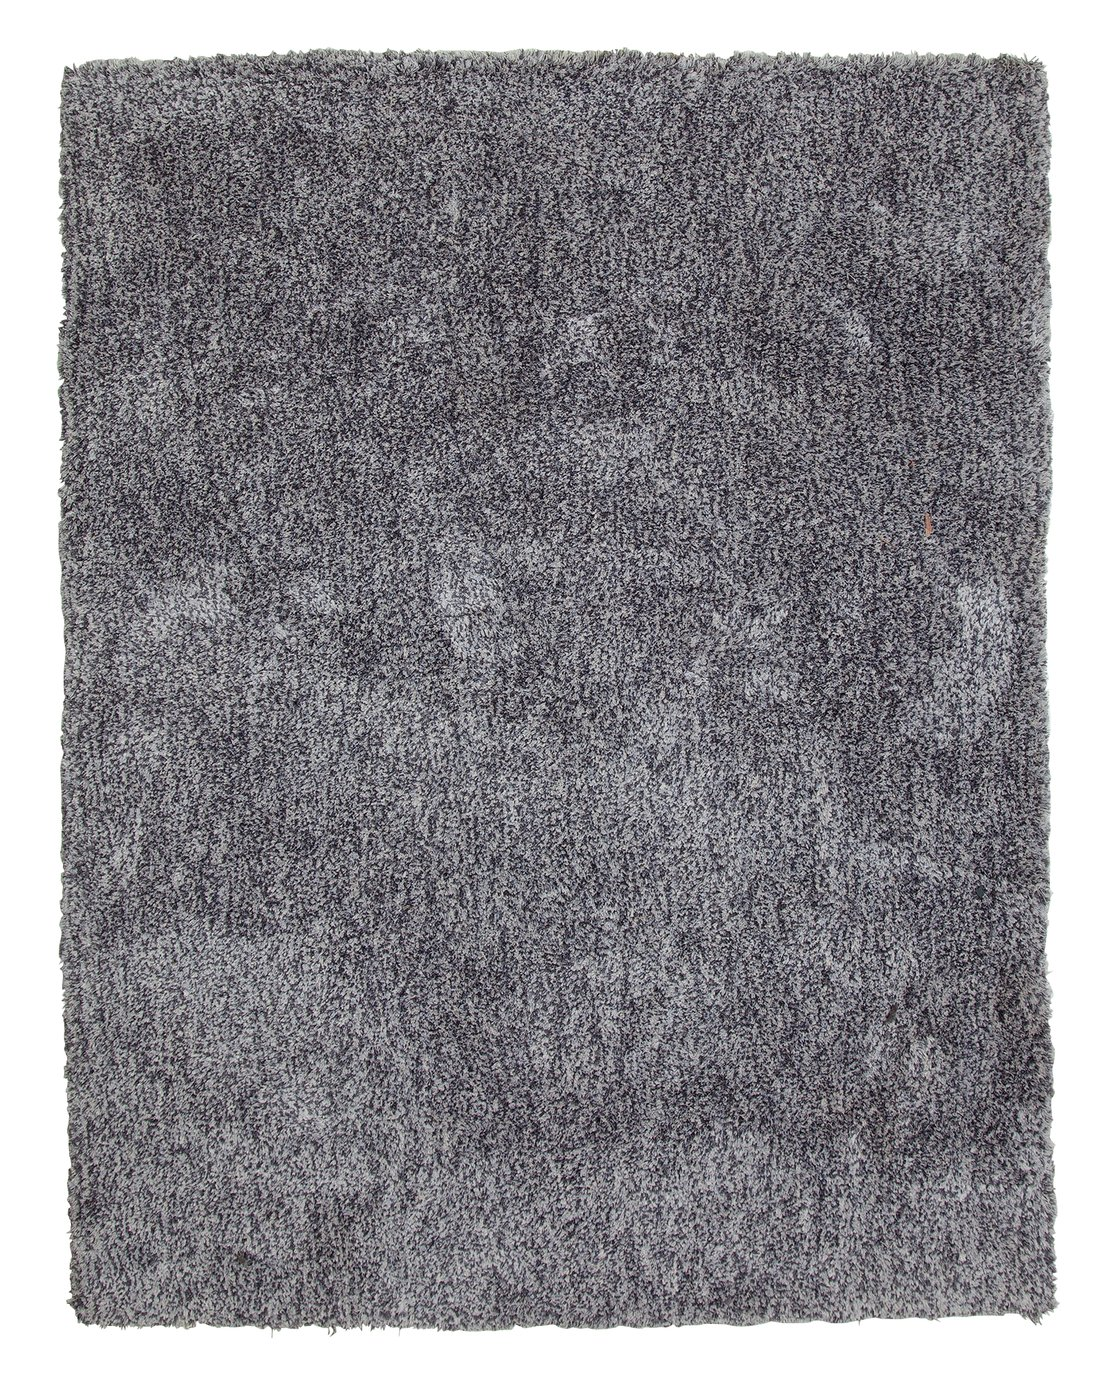 Argos Home Supersoft Multi Shaggy Rug - 120x160cm - Grey